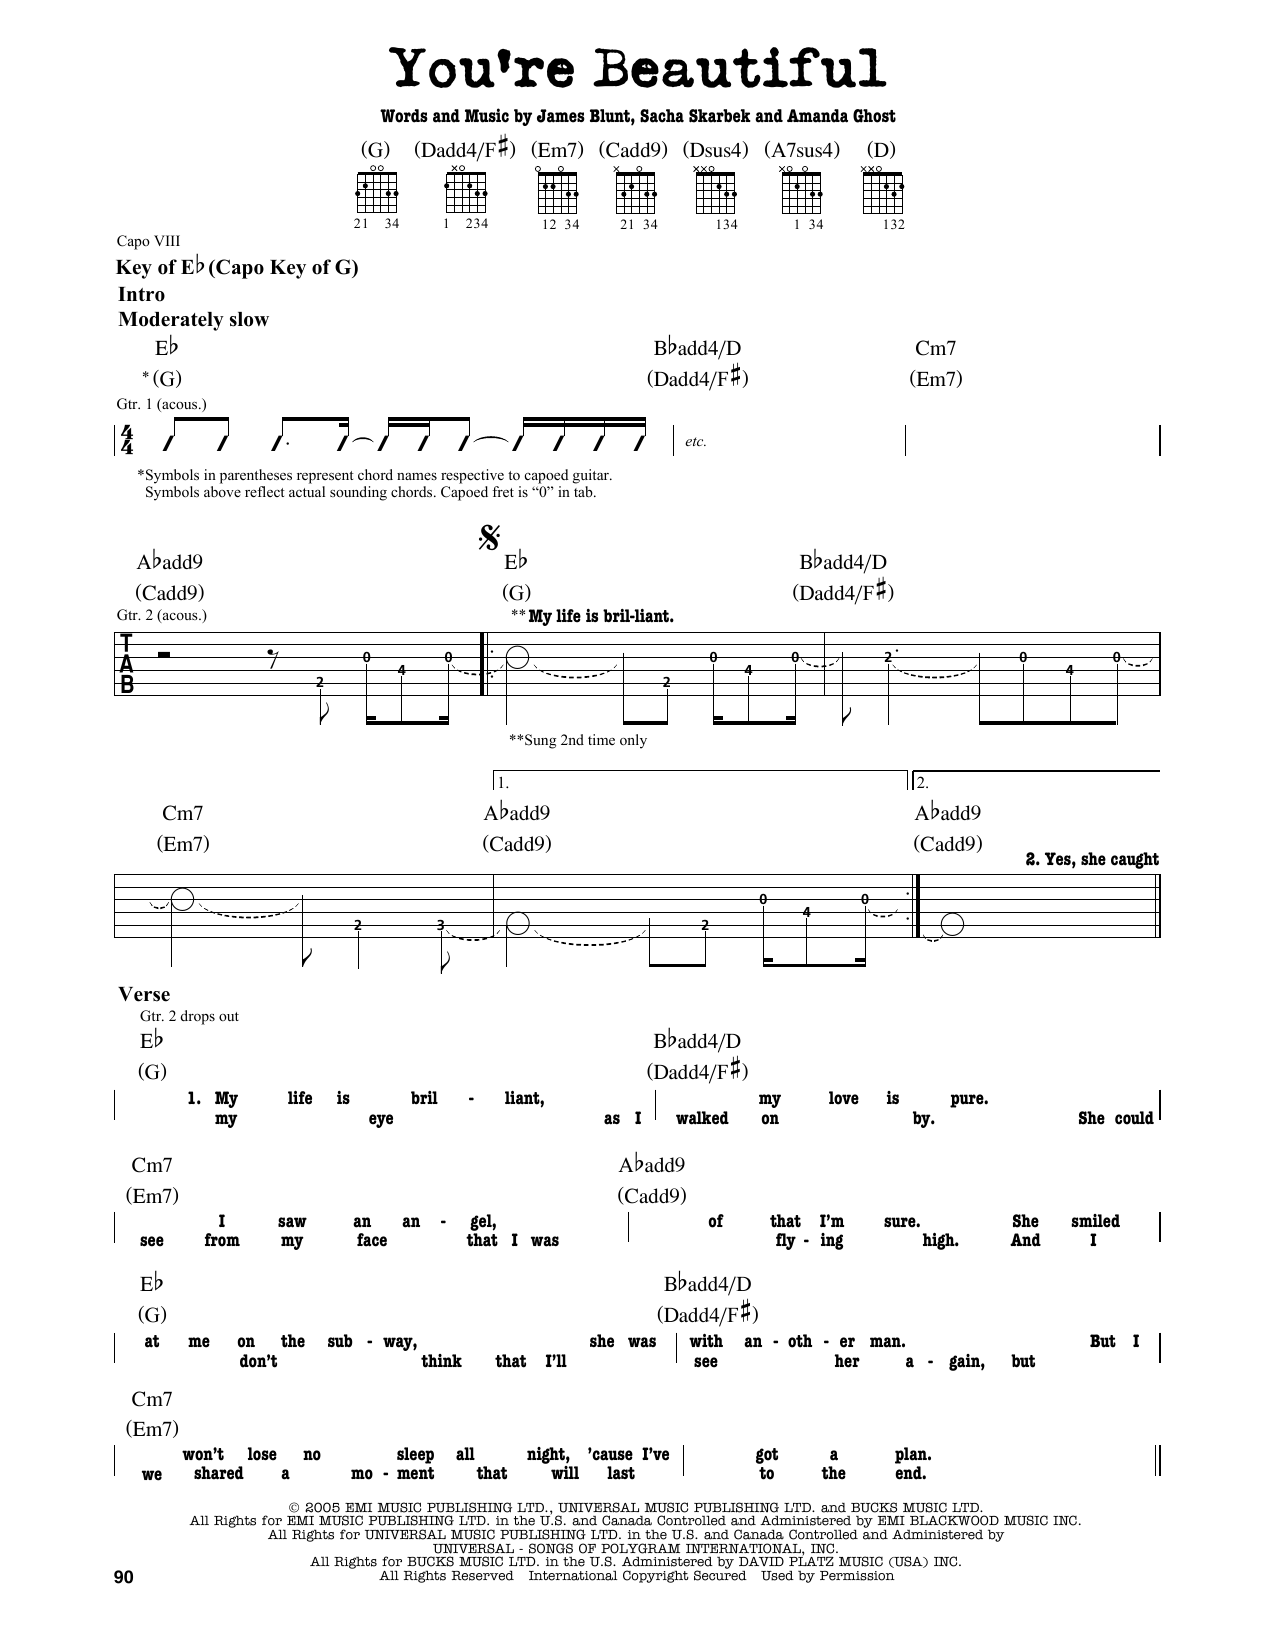 James Blunt Youre Beautiful Sheet Music Notes Chords Printable